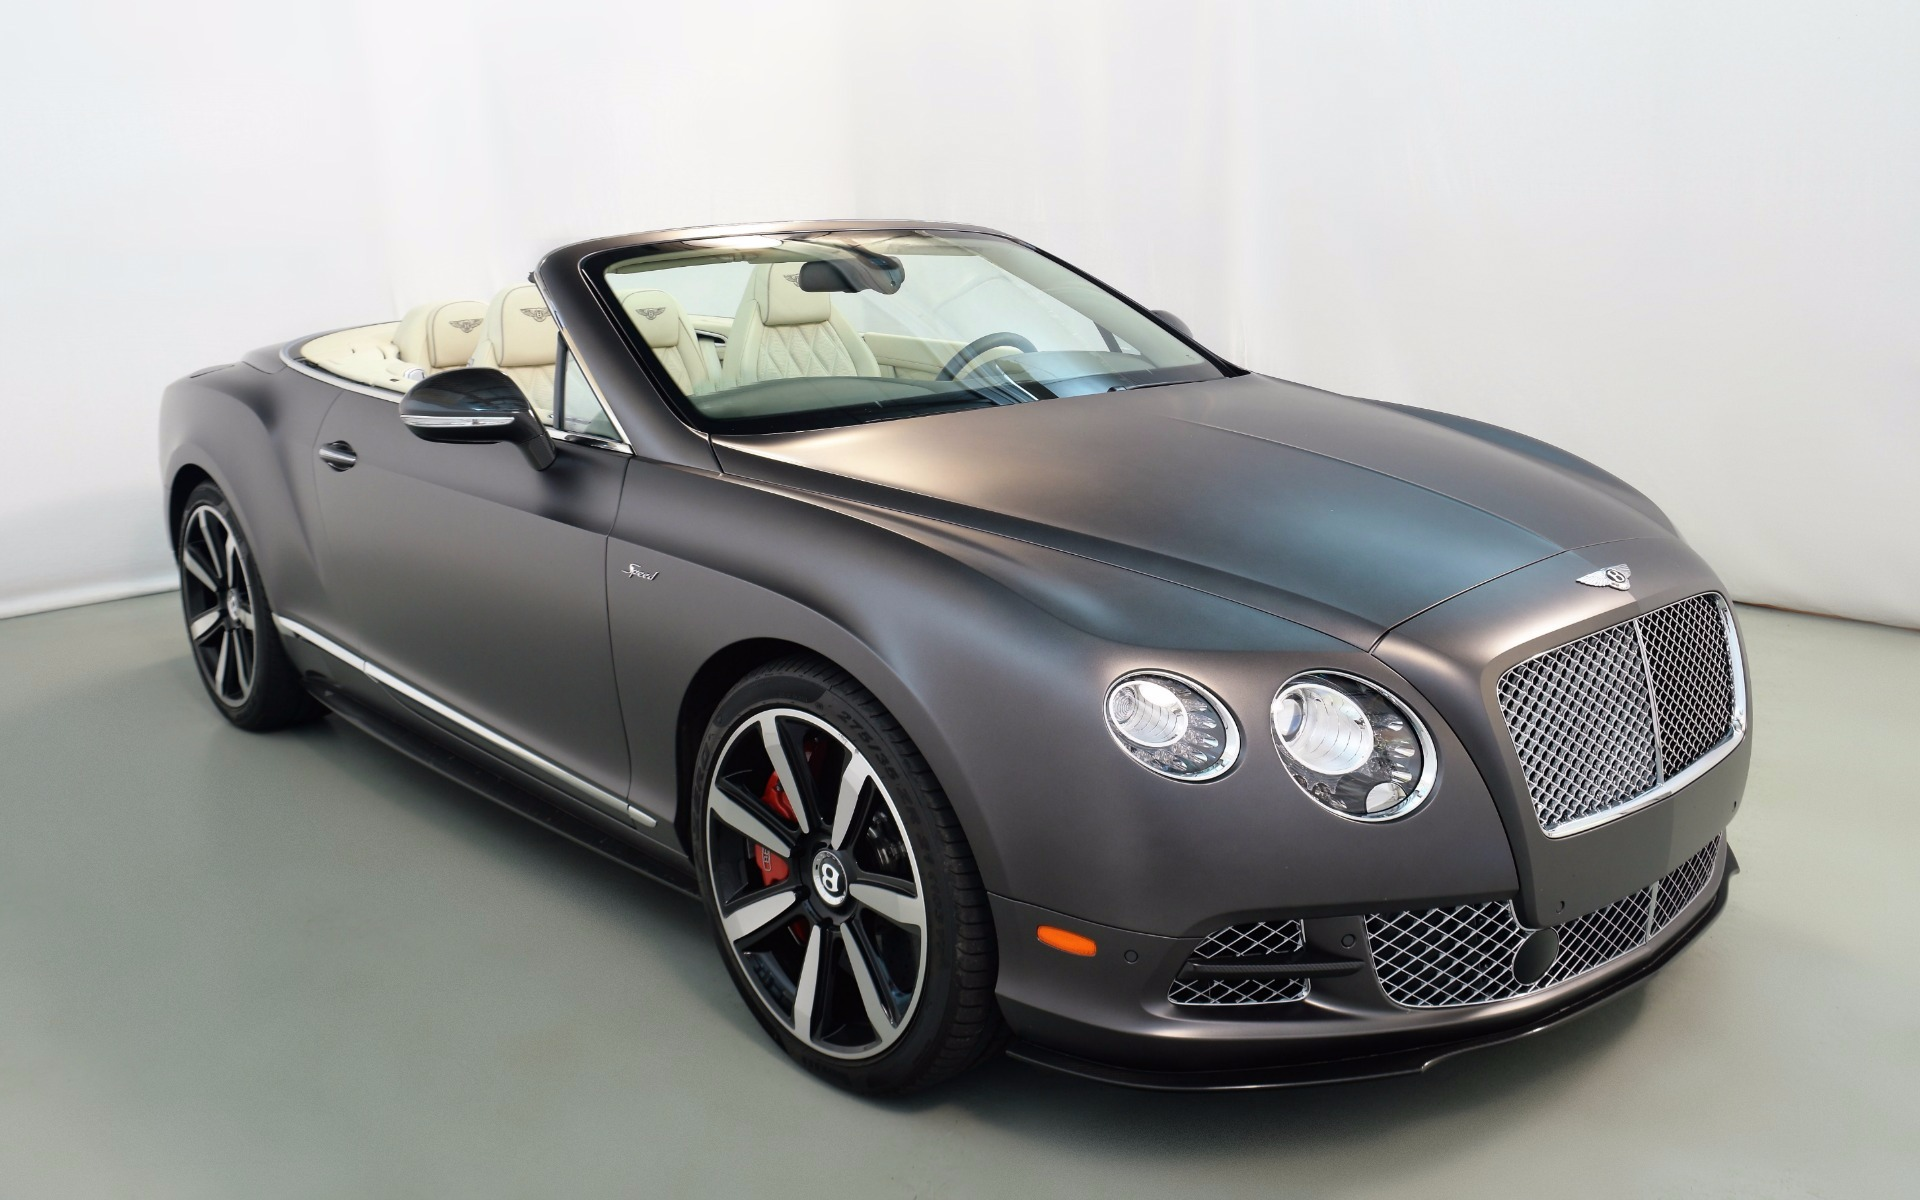 2015 bentley continental gtc speed for sale in norwell ma. Black Bedroom Furniture Sets. Home Design Ideas